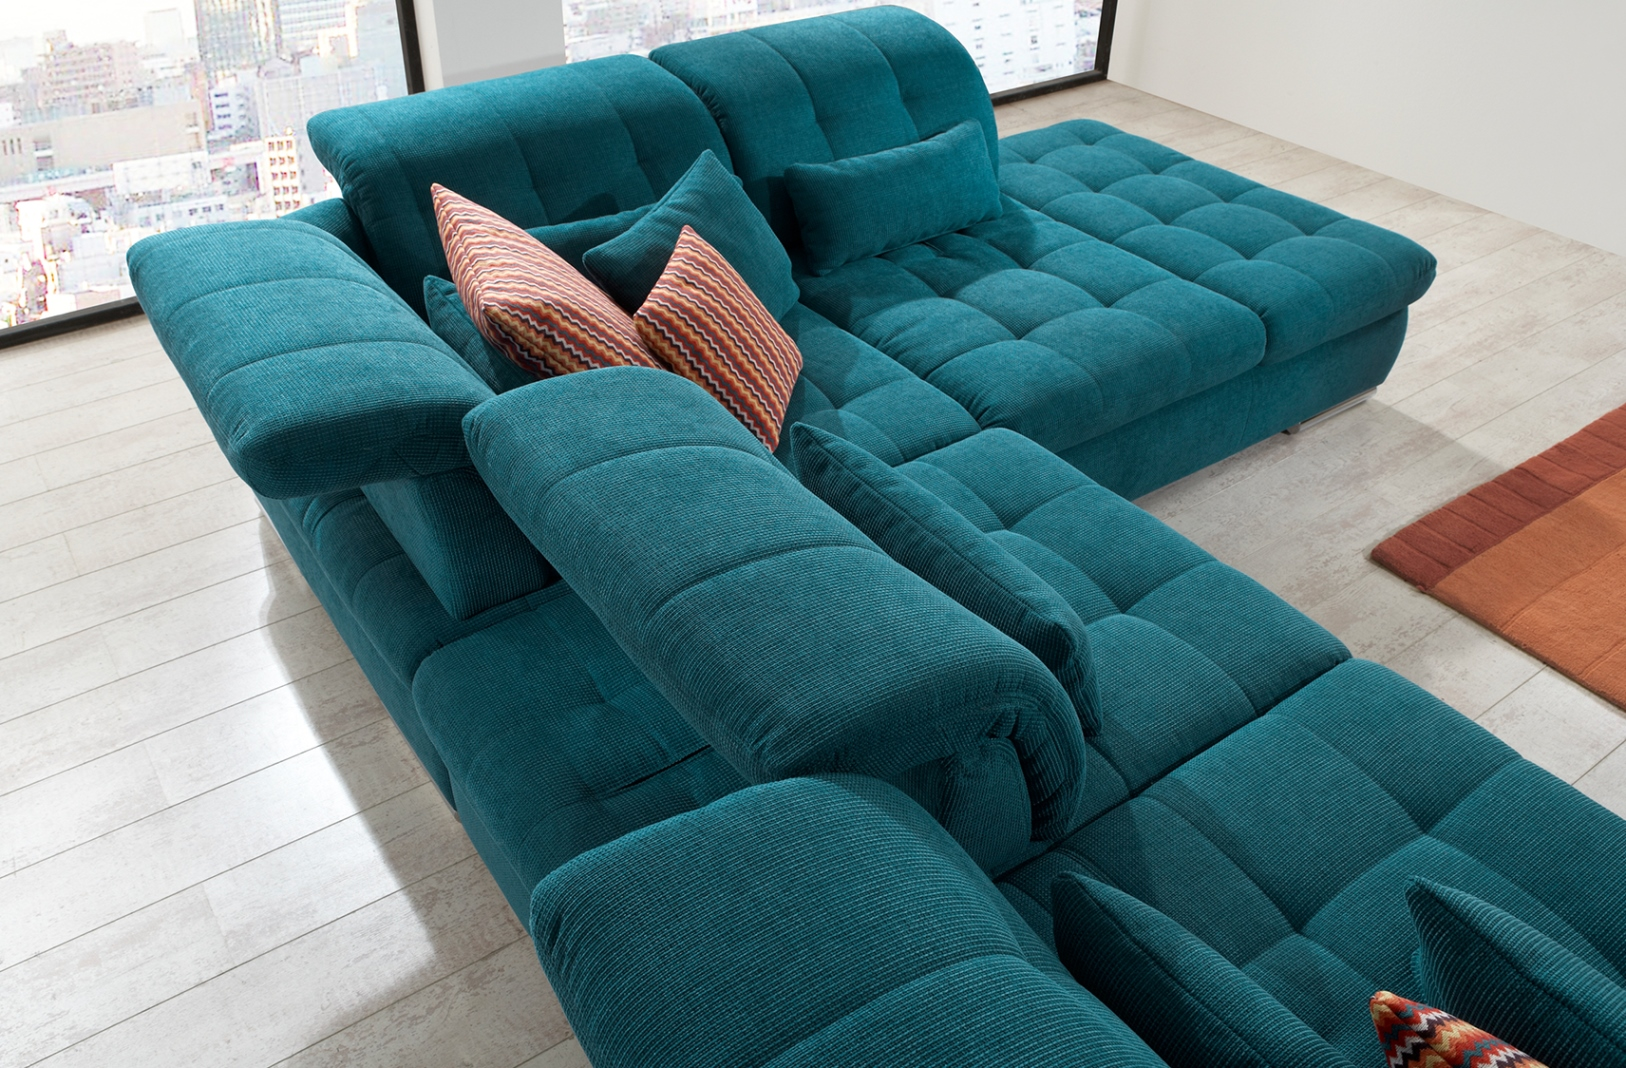 Teal Bed Covers Alpine Sectional Sofa : Sleeper With Storage